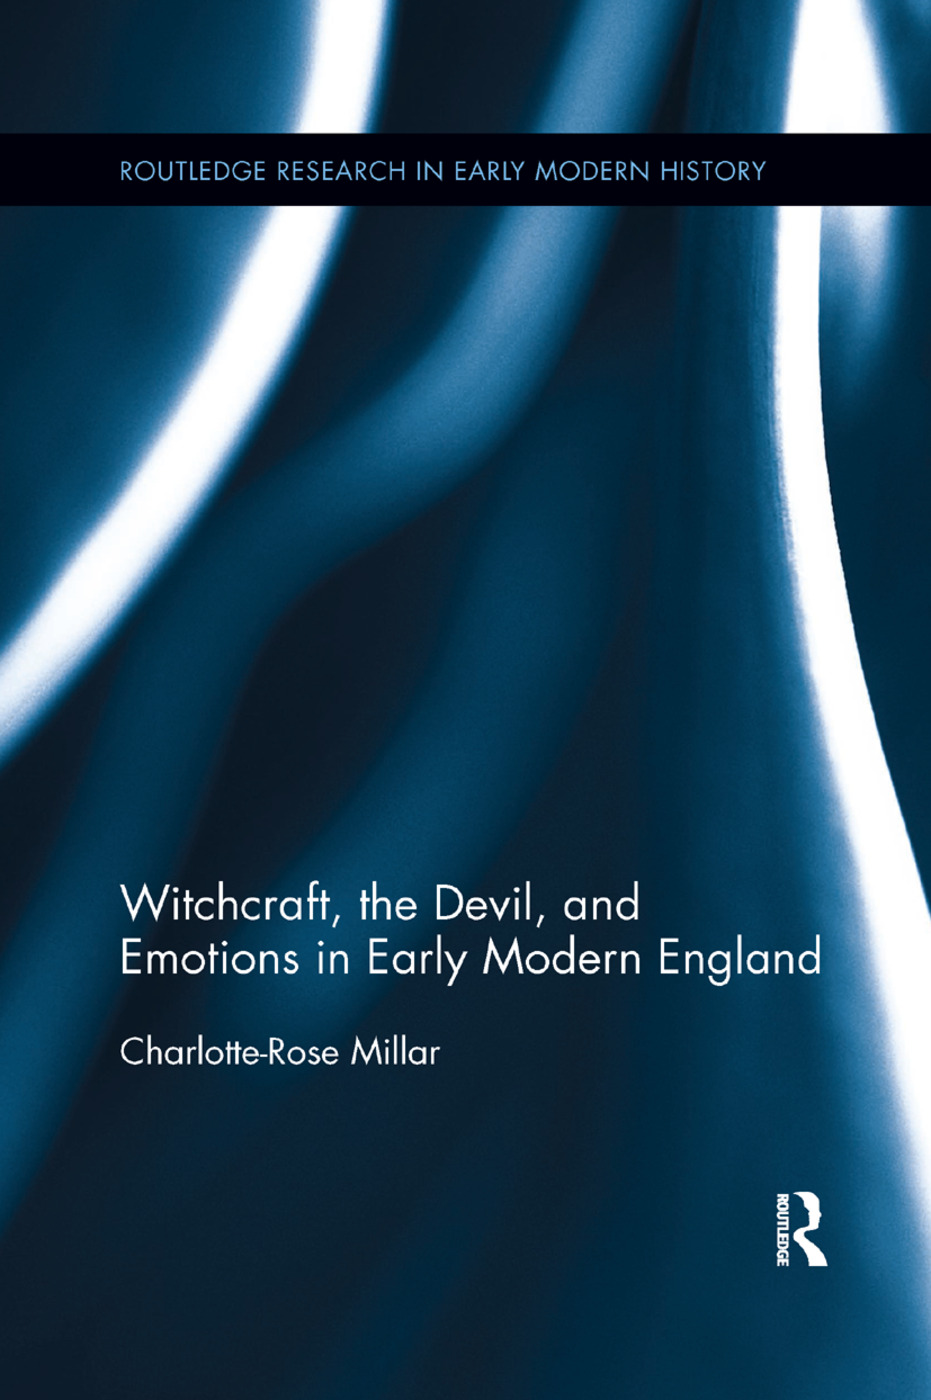 Witchcraft, the Devil, and Emotions in Early Modern England: 1st Edition (Paperback) book cover